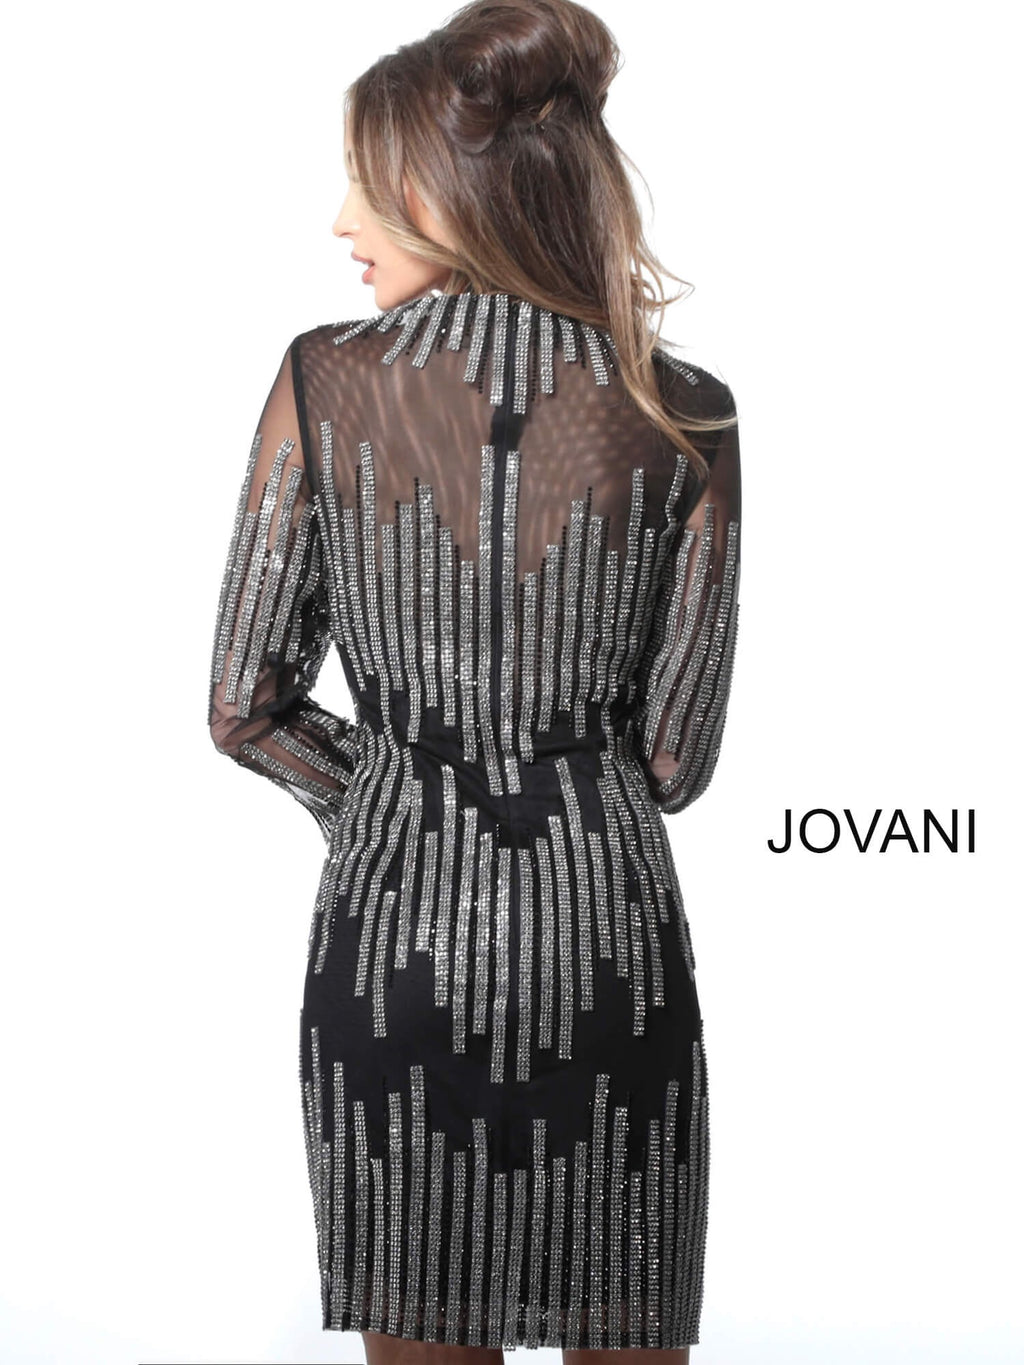 JOVANI 3964 Embellished Cocktail Dress